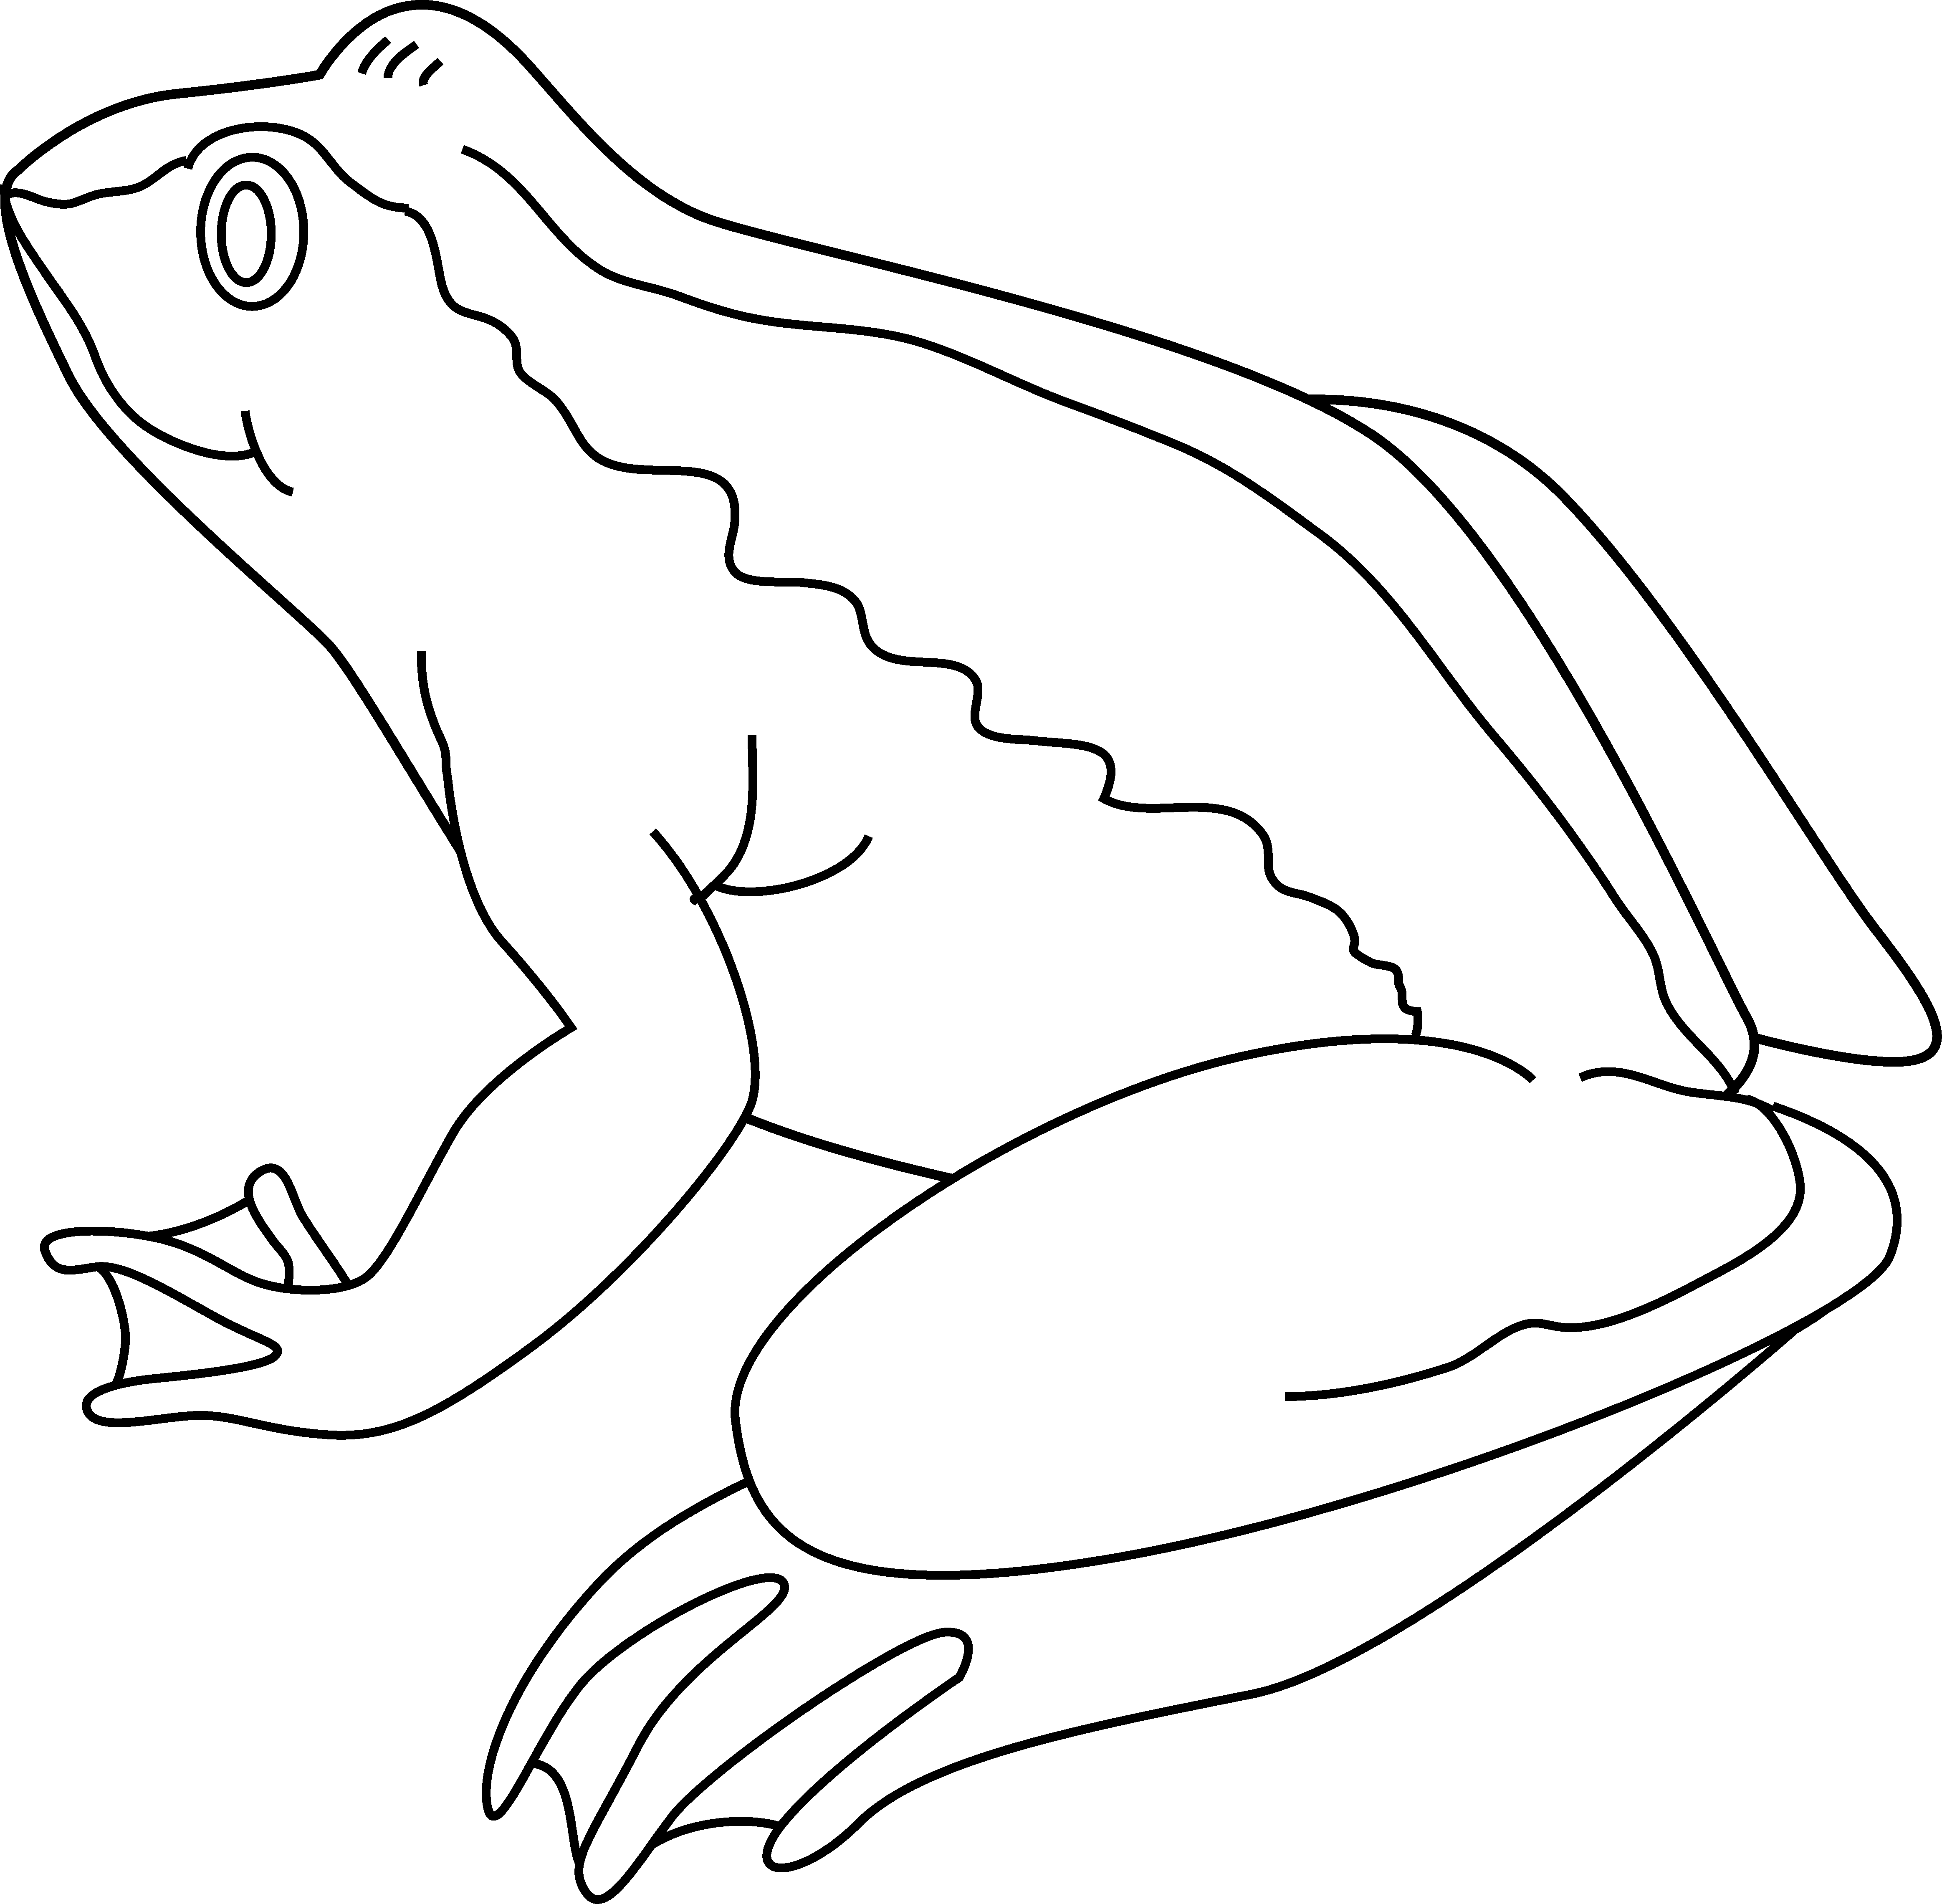 Frog  black and white frog clipart black and white 8